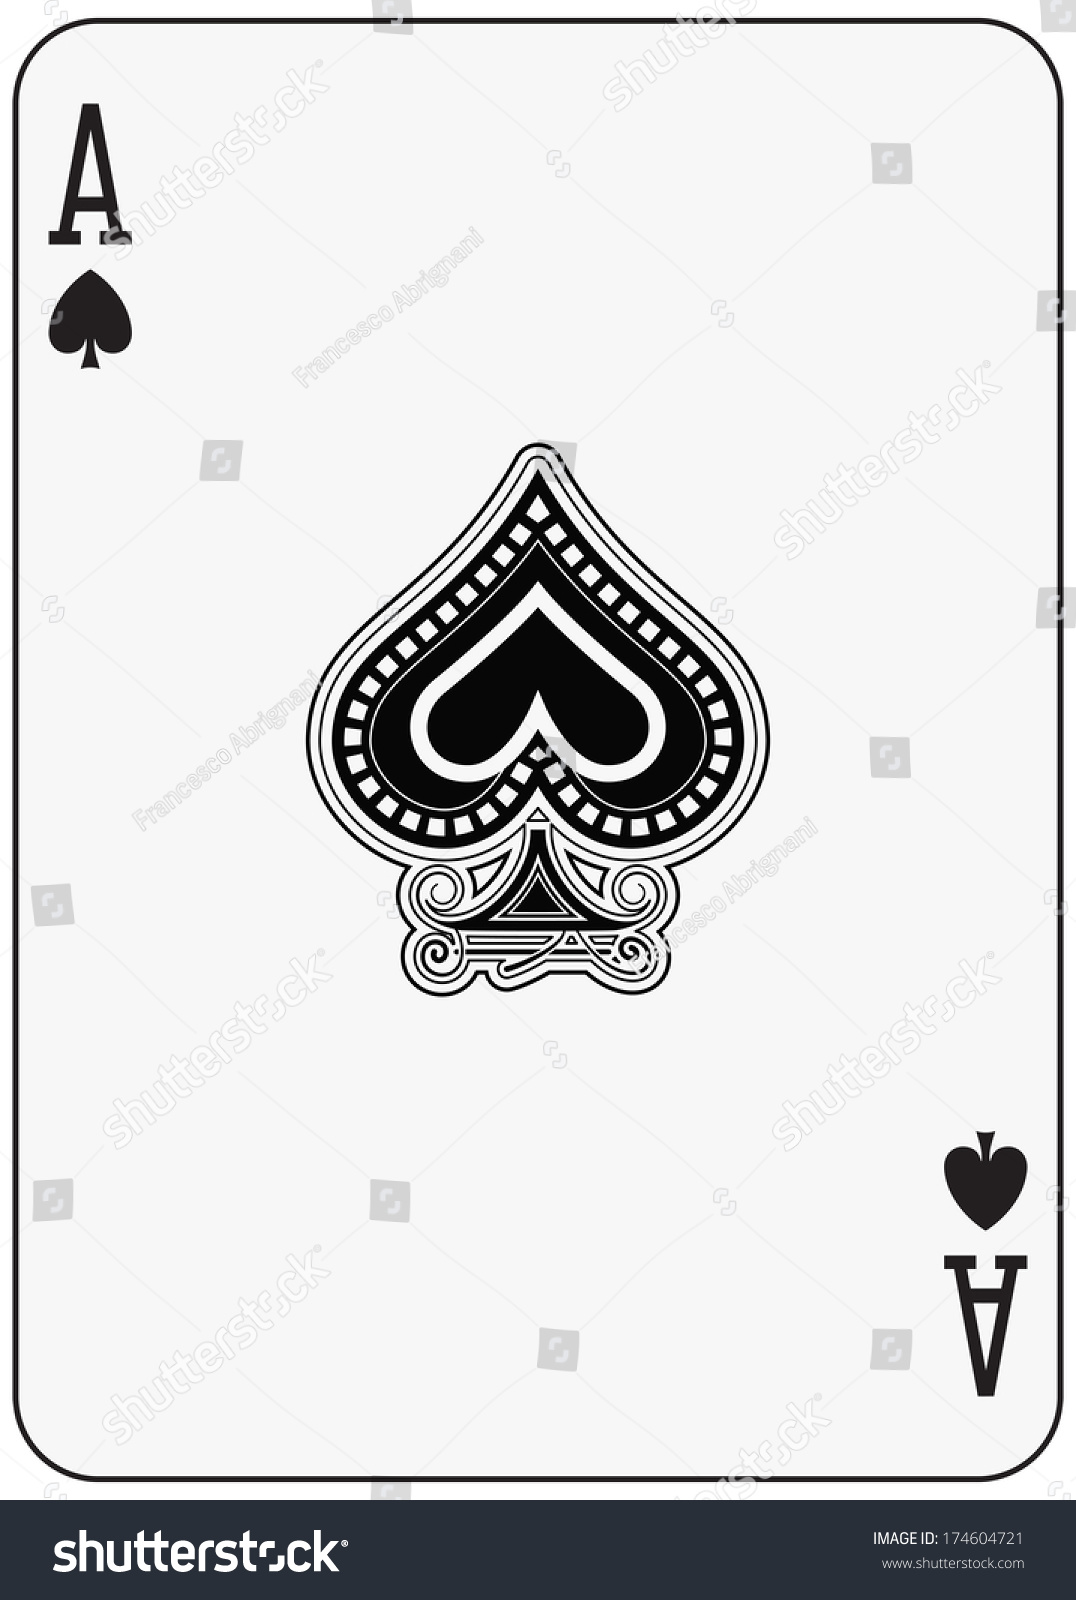 Ace spade playing card stock illustration 174604721 shutterstock ace of spade playing card biocorpaavc Choice Image